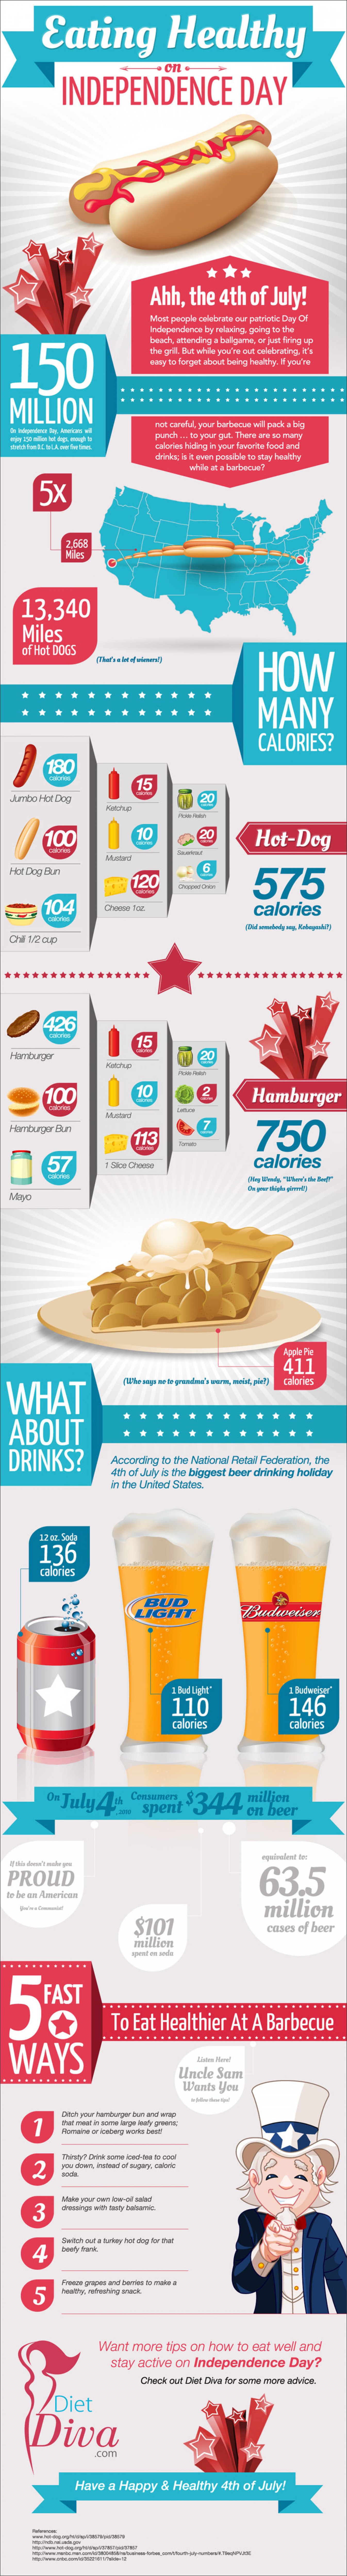 Eating Healthy on the 4th Infographic